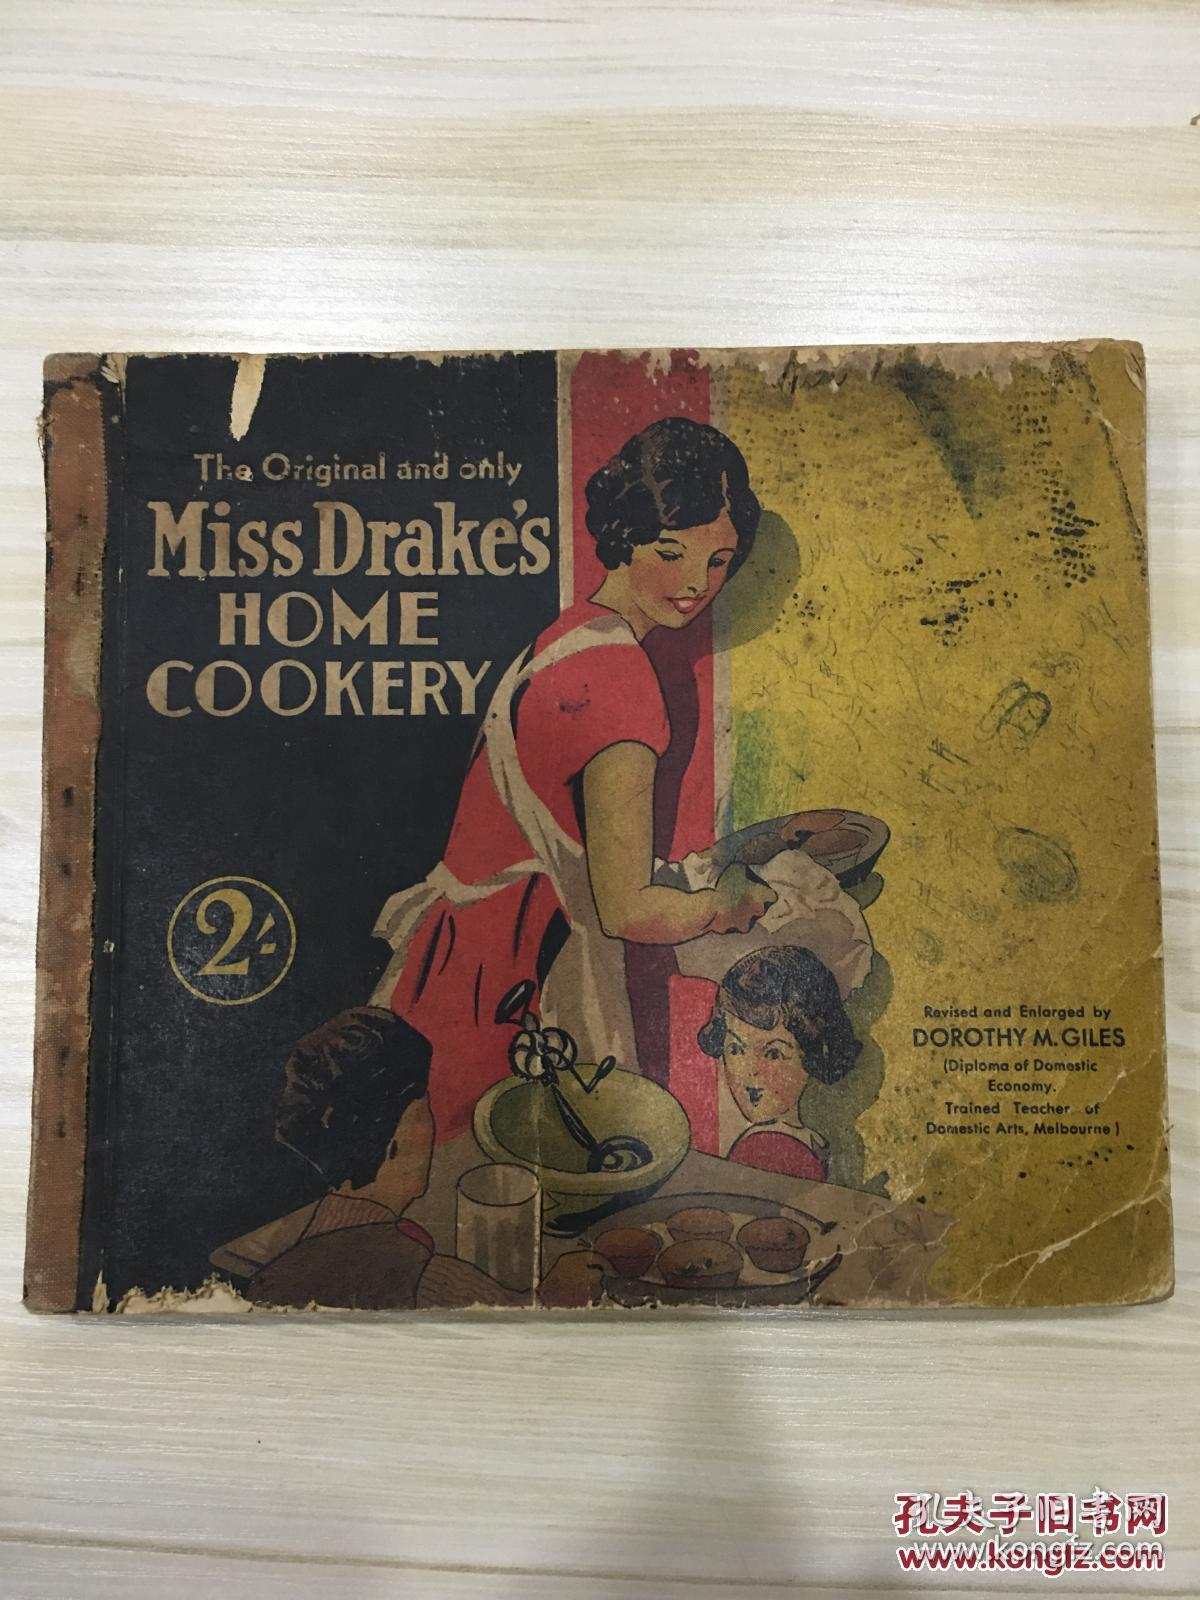 the original and only miss drake's home cookery德雷克小姐的家庭烹饪